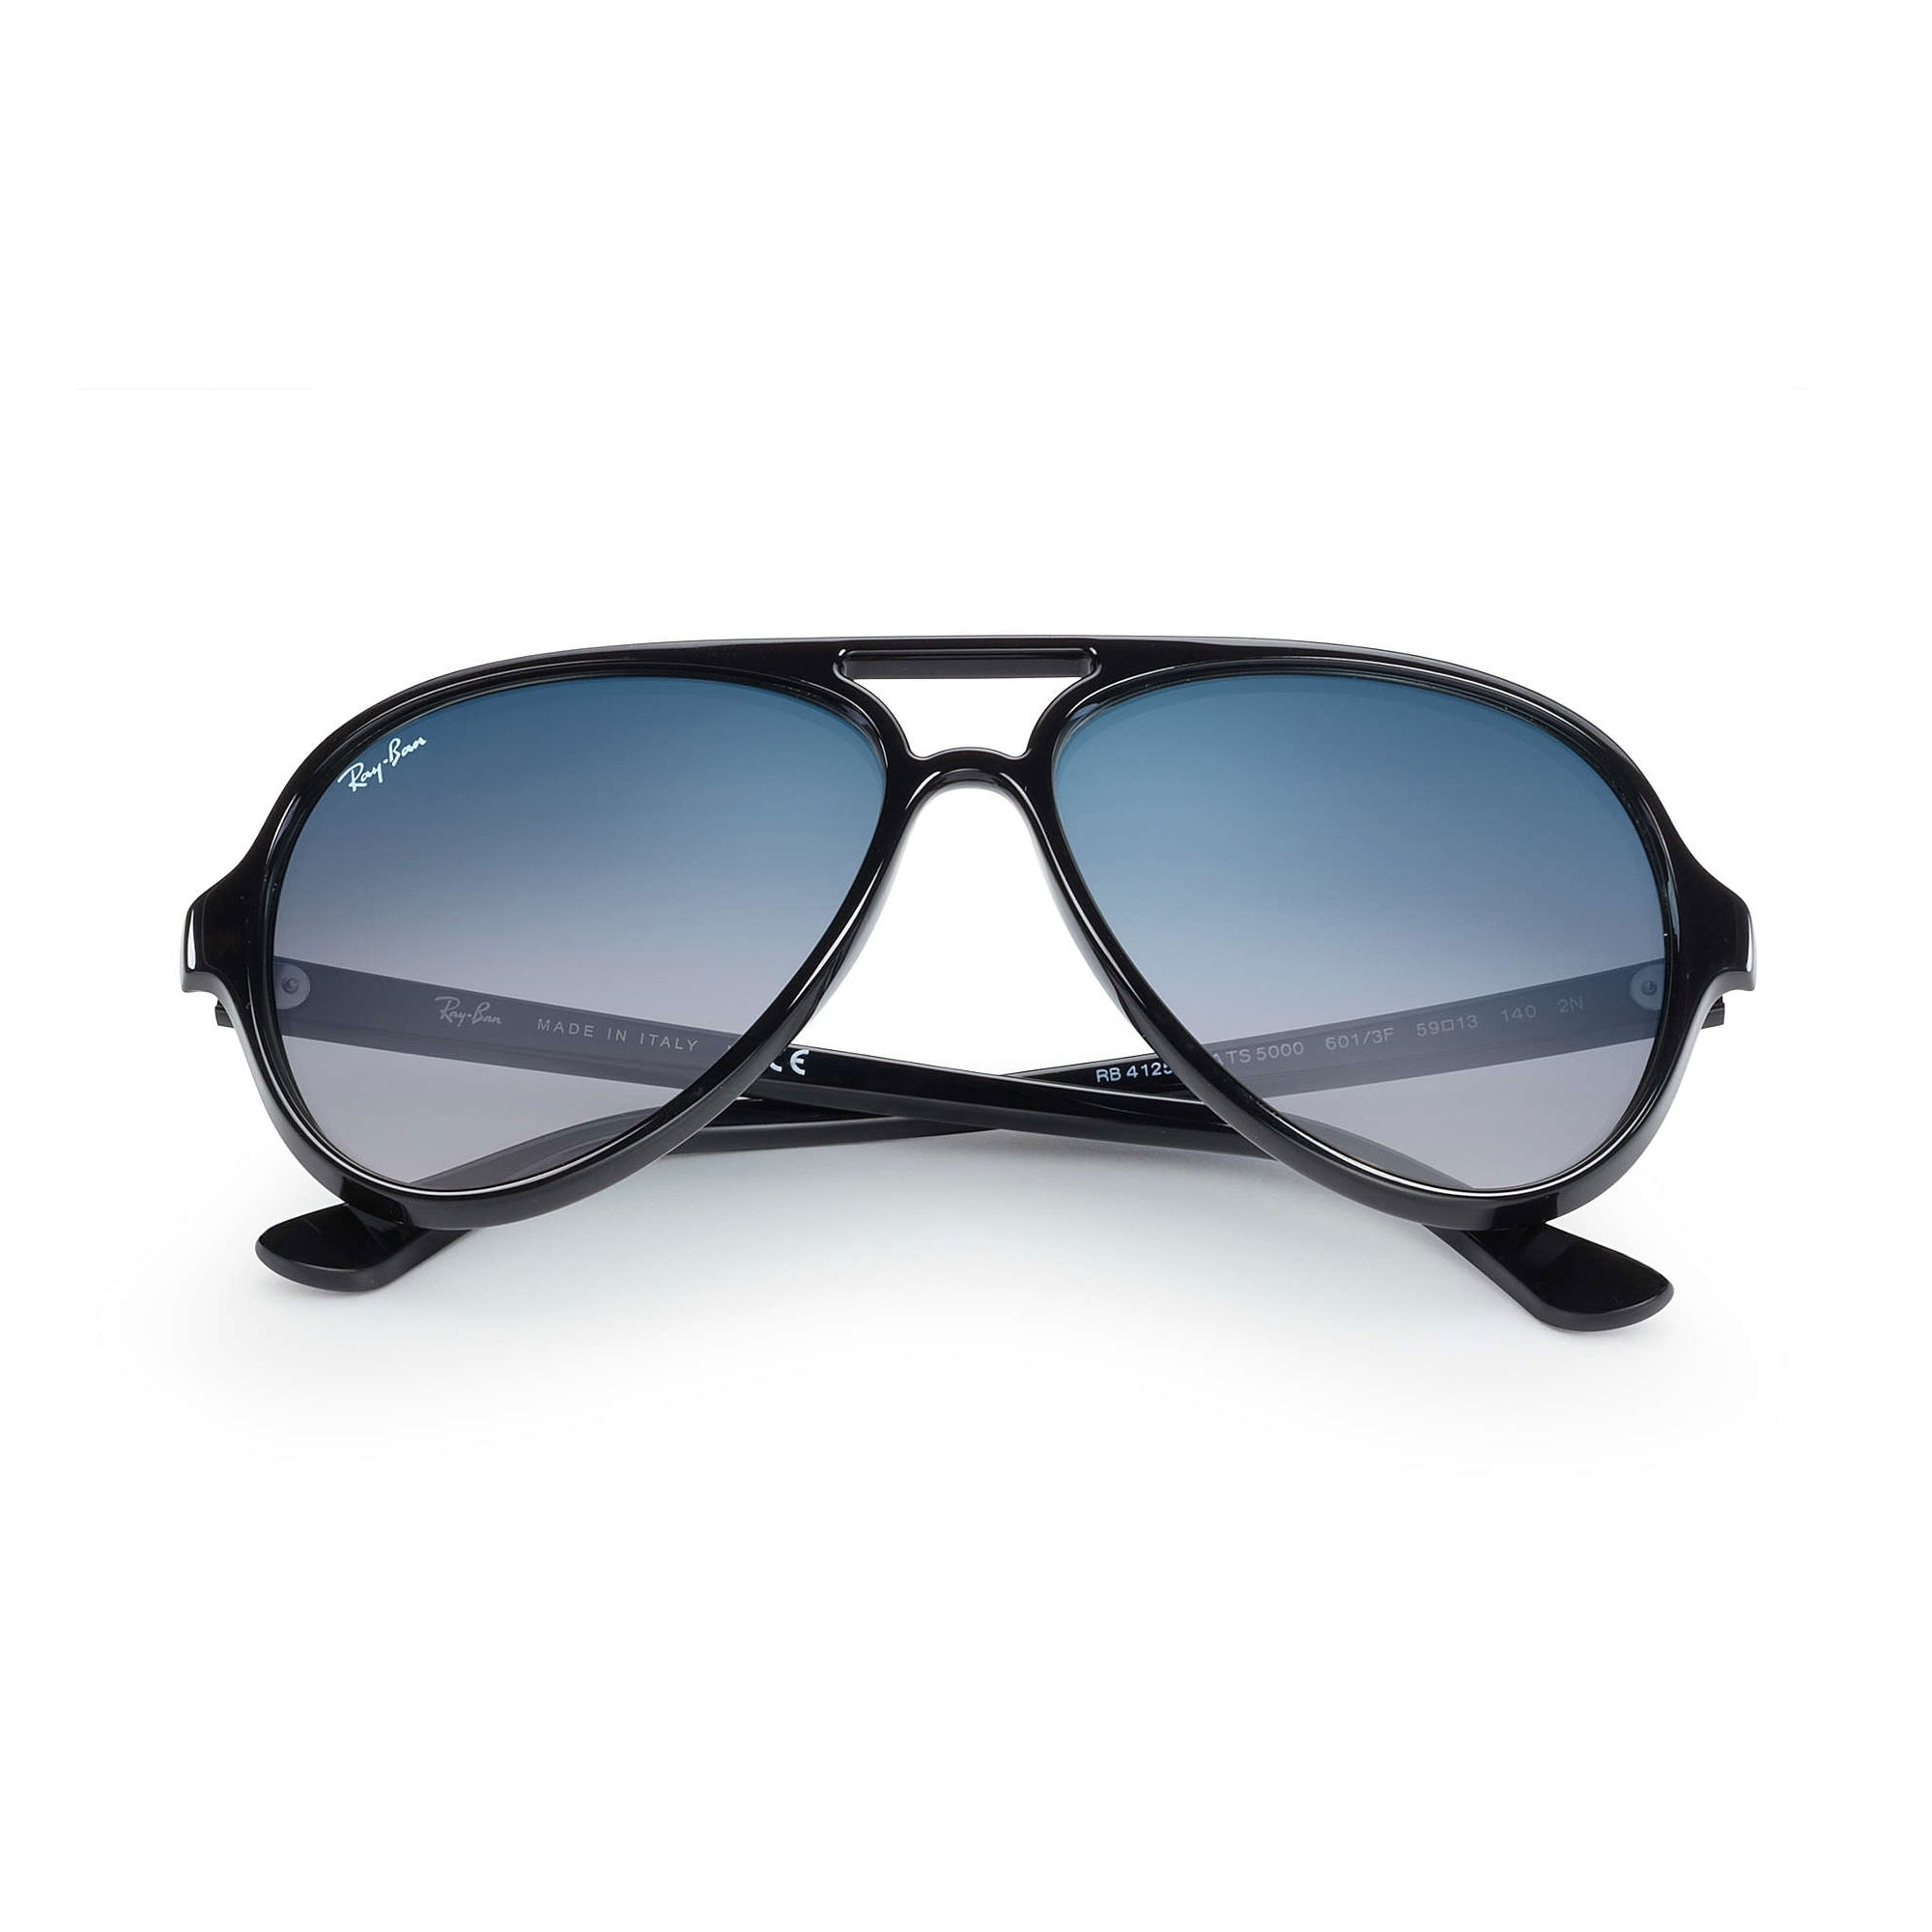 Shop Ray-Ban RB4125 Cats 5000 Classic Sunglasses 59mm - Free Shipping Today  - Overstock.com - 24301407 f01d21b07a8c